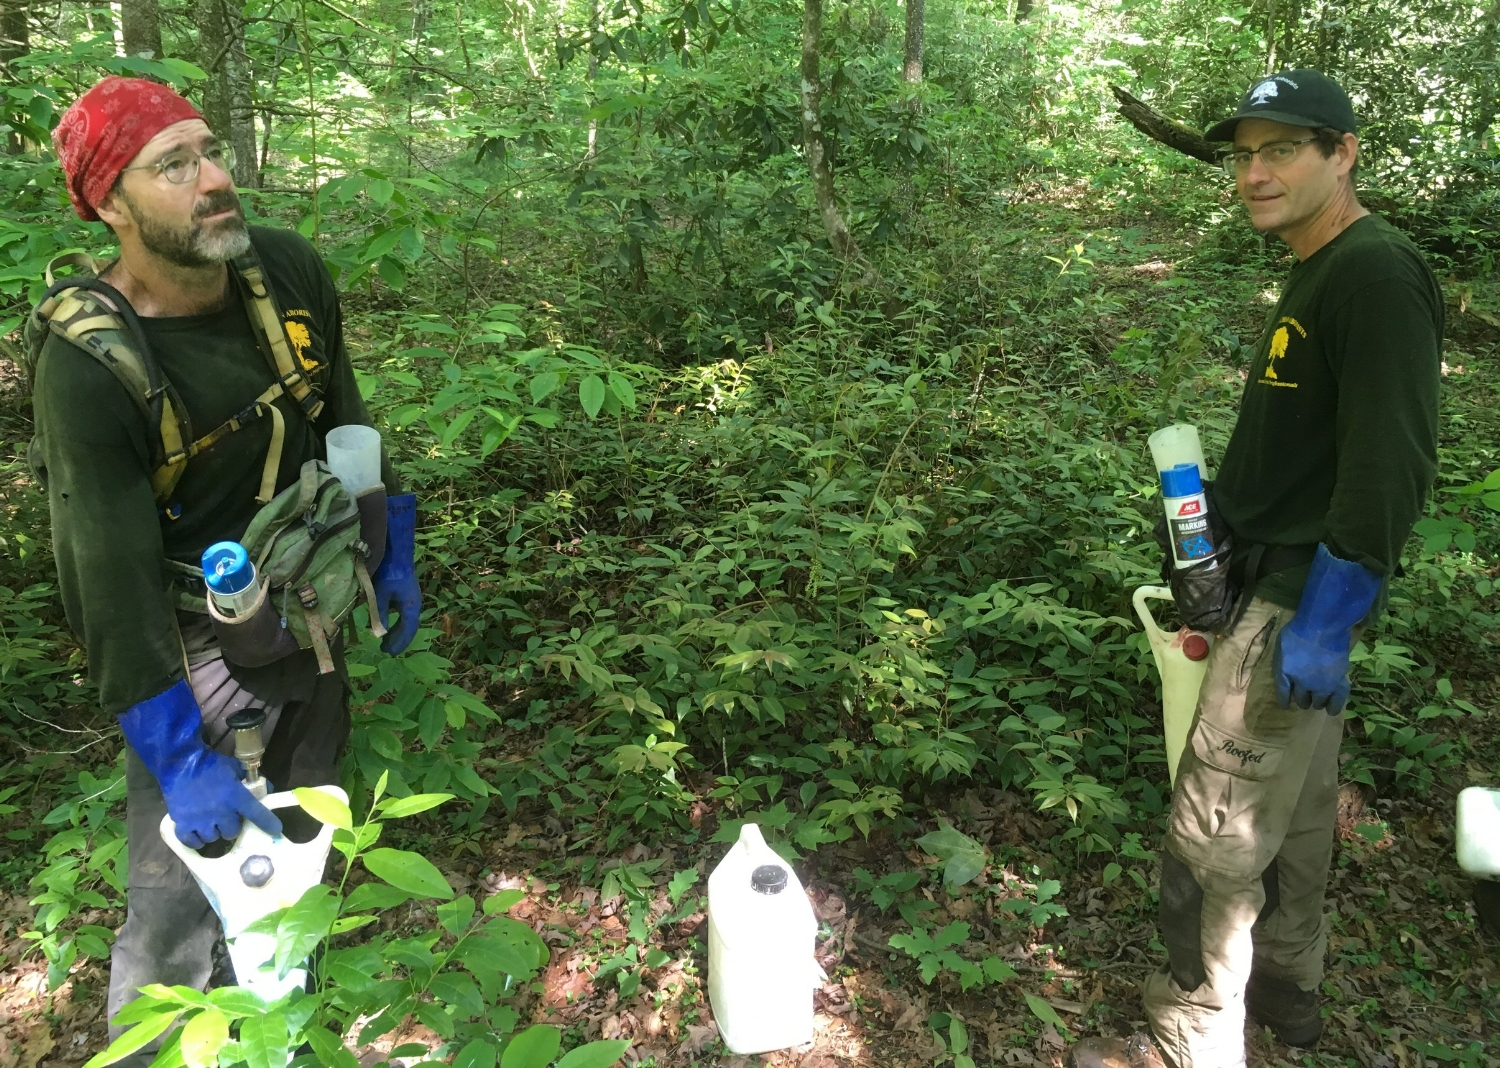 Will Blozan and Jason Childs, owners of Appalachian Arborists, prepare to treat Eastern Hemlock trees along the Coon Branch Trail.